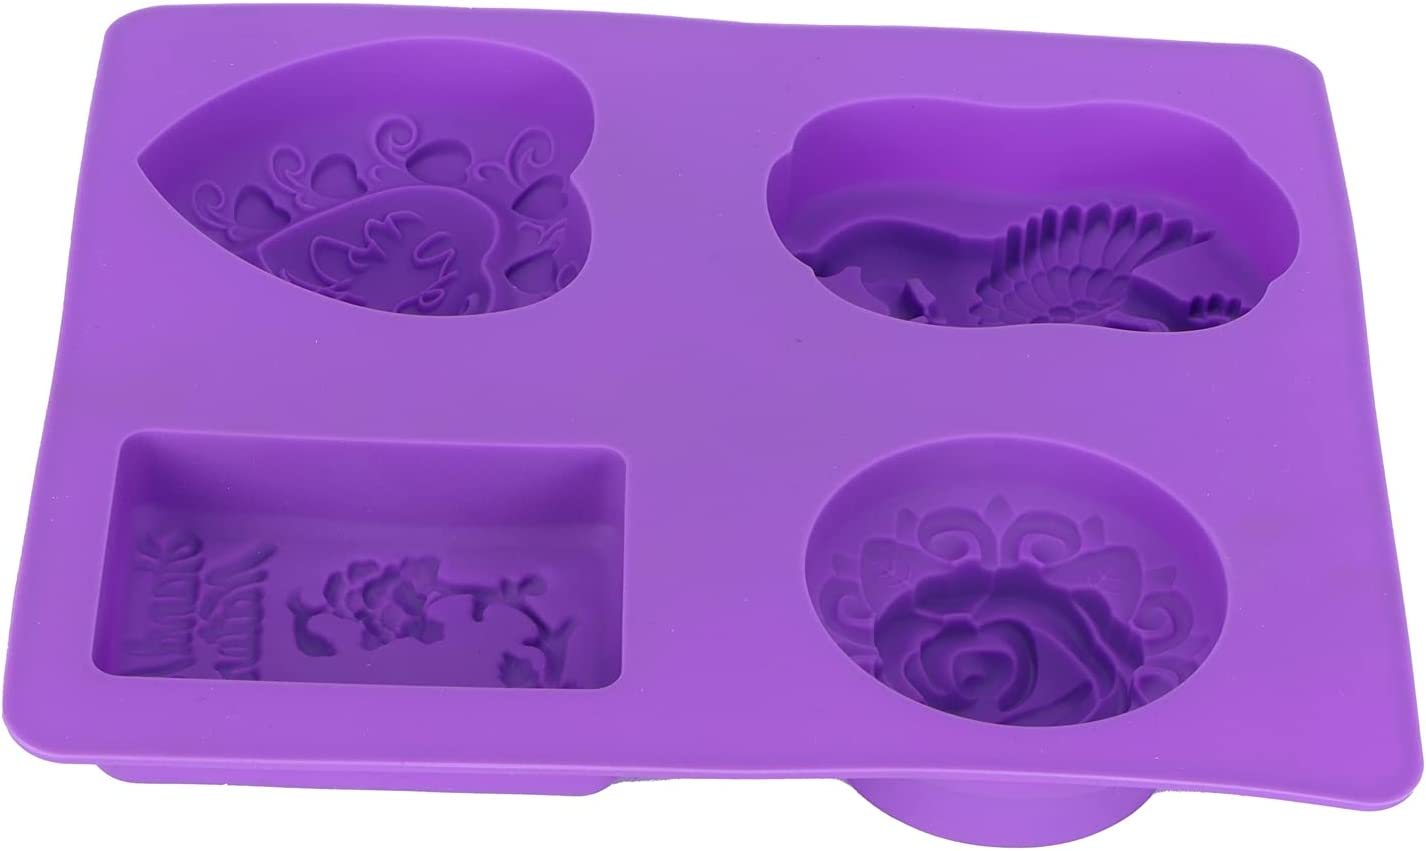 Silicone Mold, Baking Tools Multi‑Functional Food‑Grade with 4‑Grid Silicone for Baking DIY